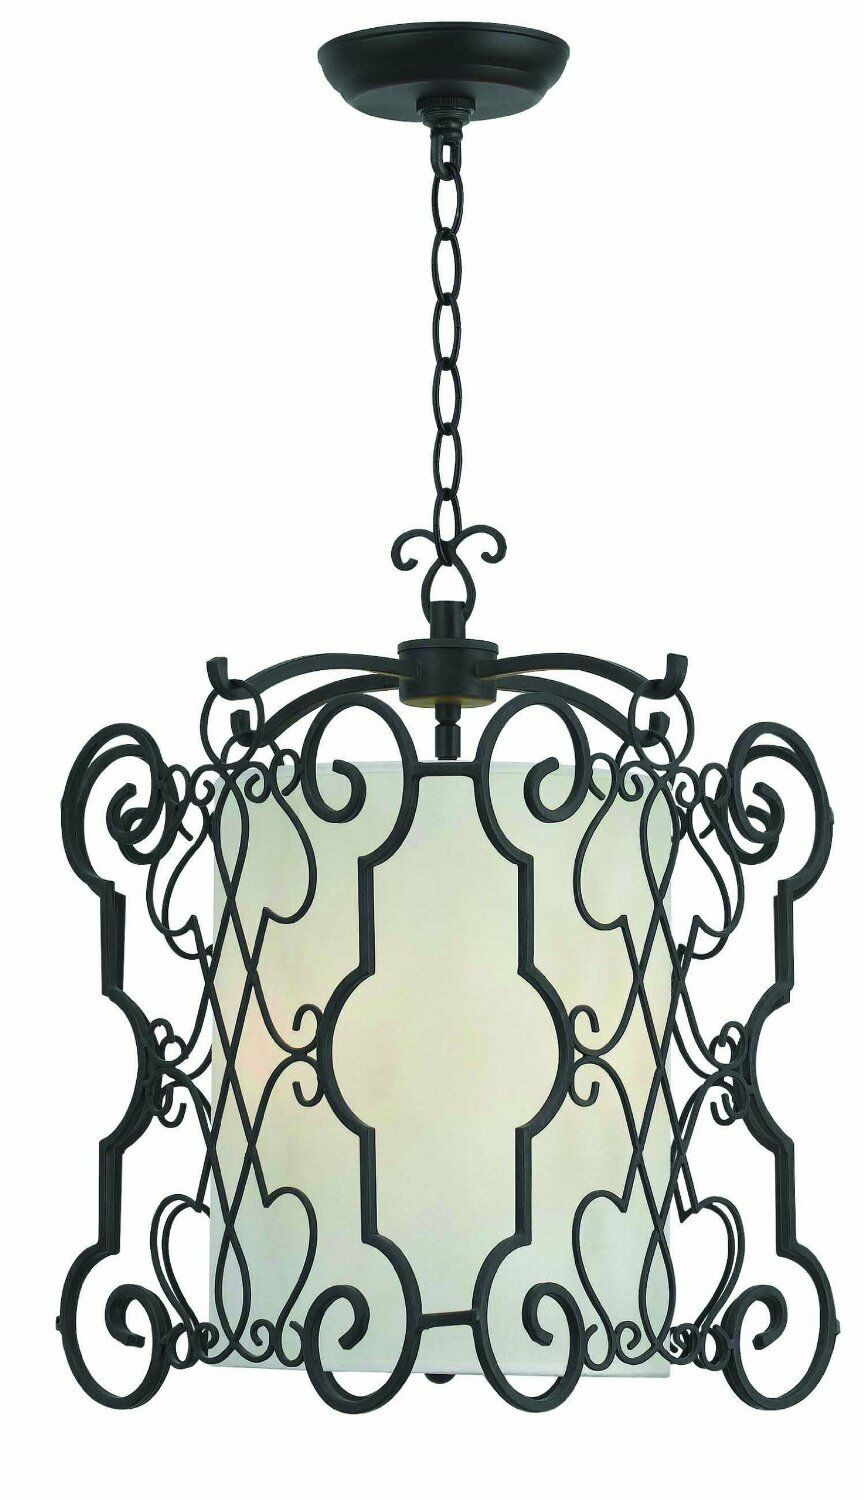 World Imports - Amelia Collection 3-Light Rust Iron Chandelier